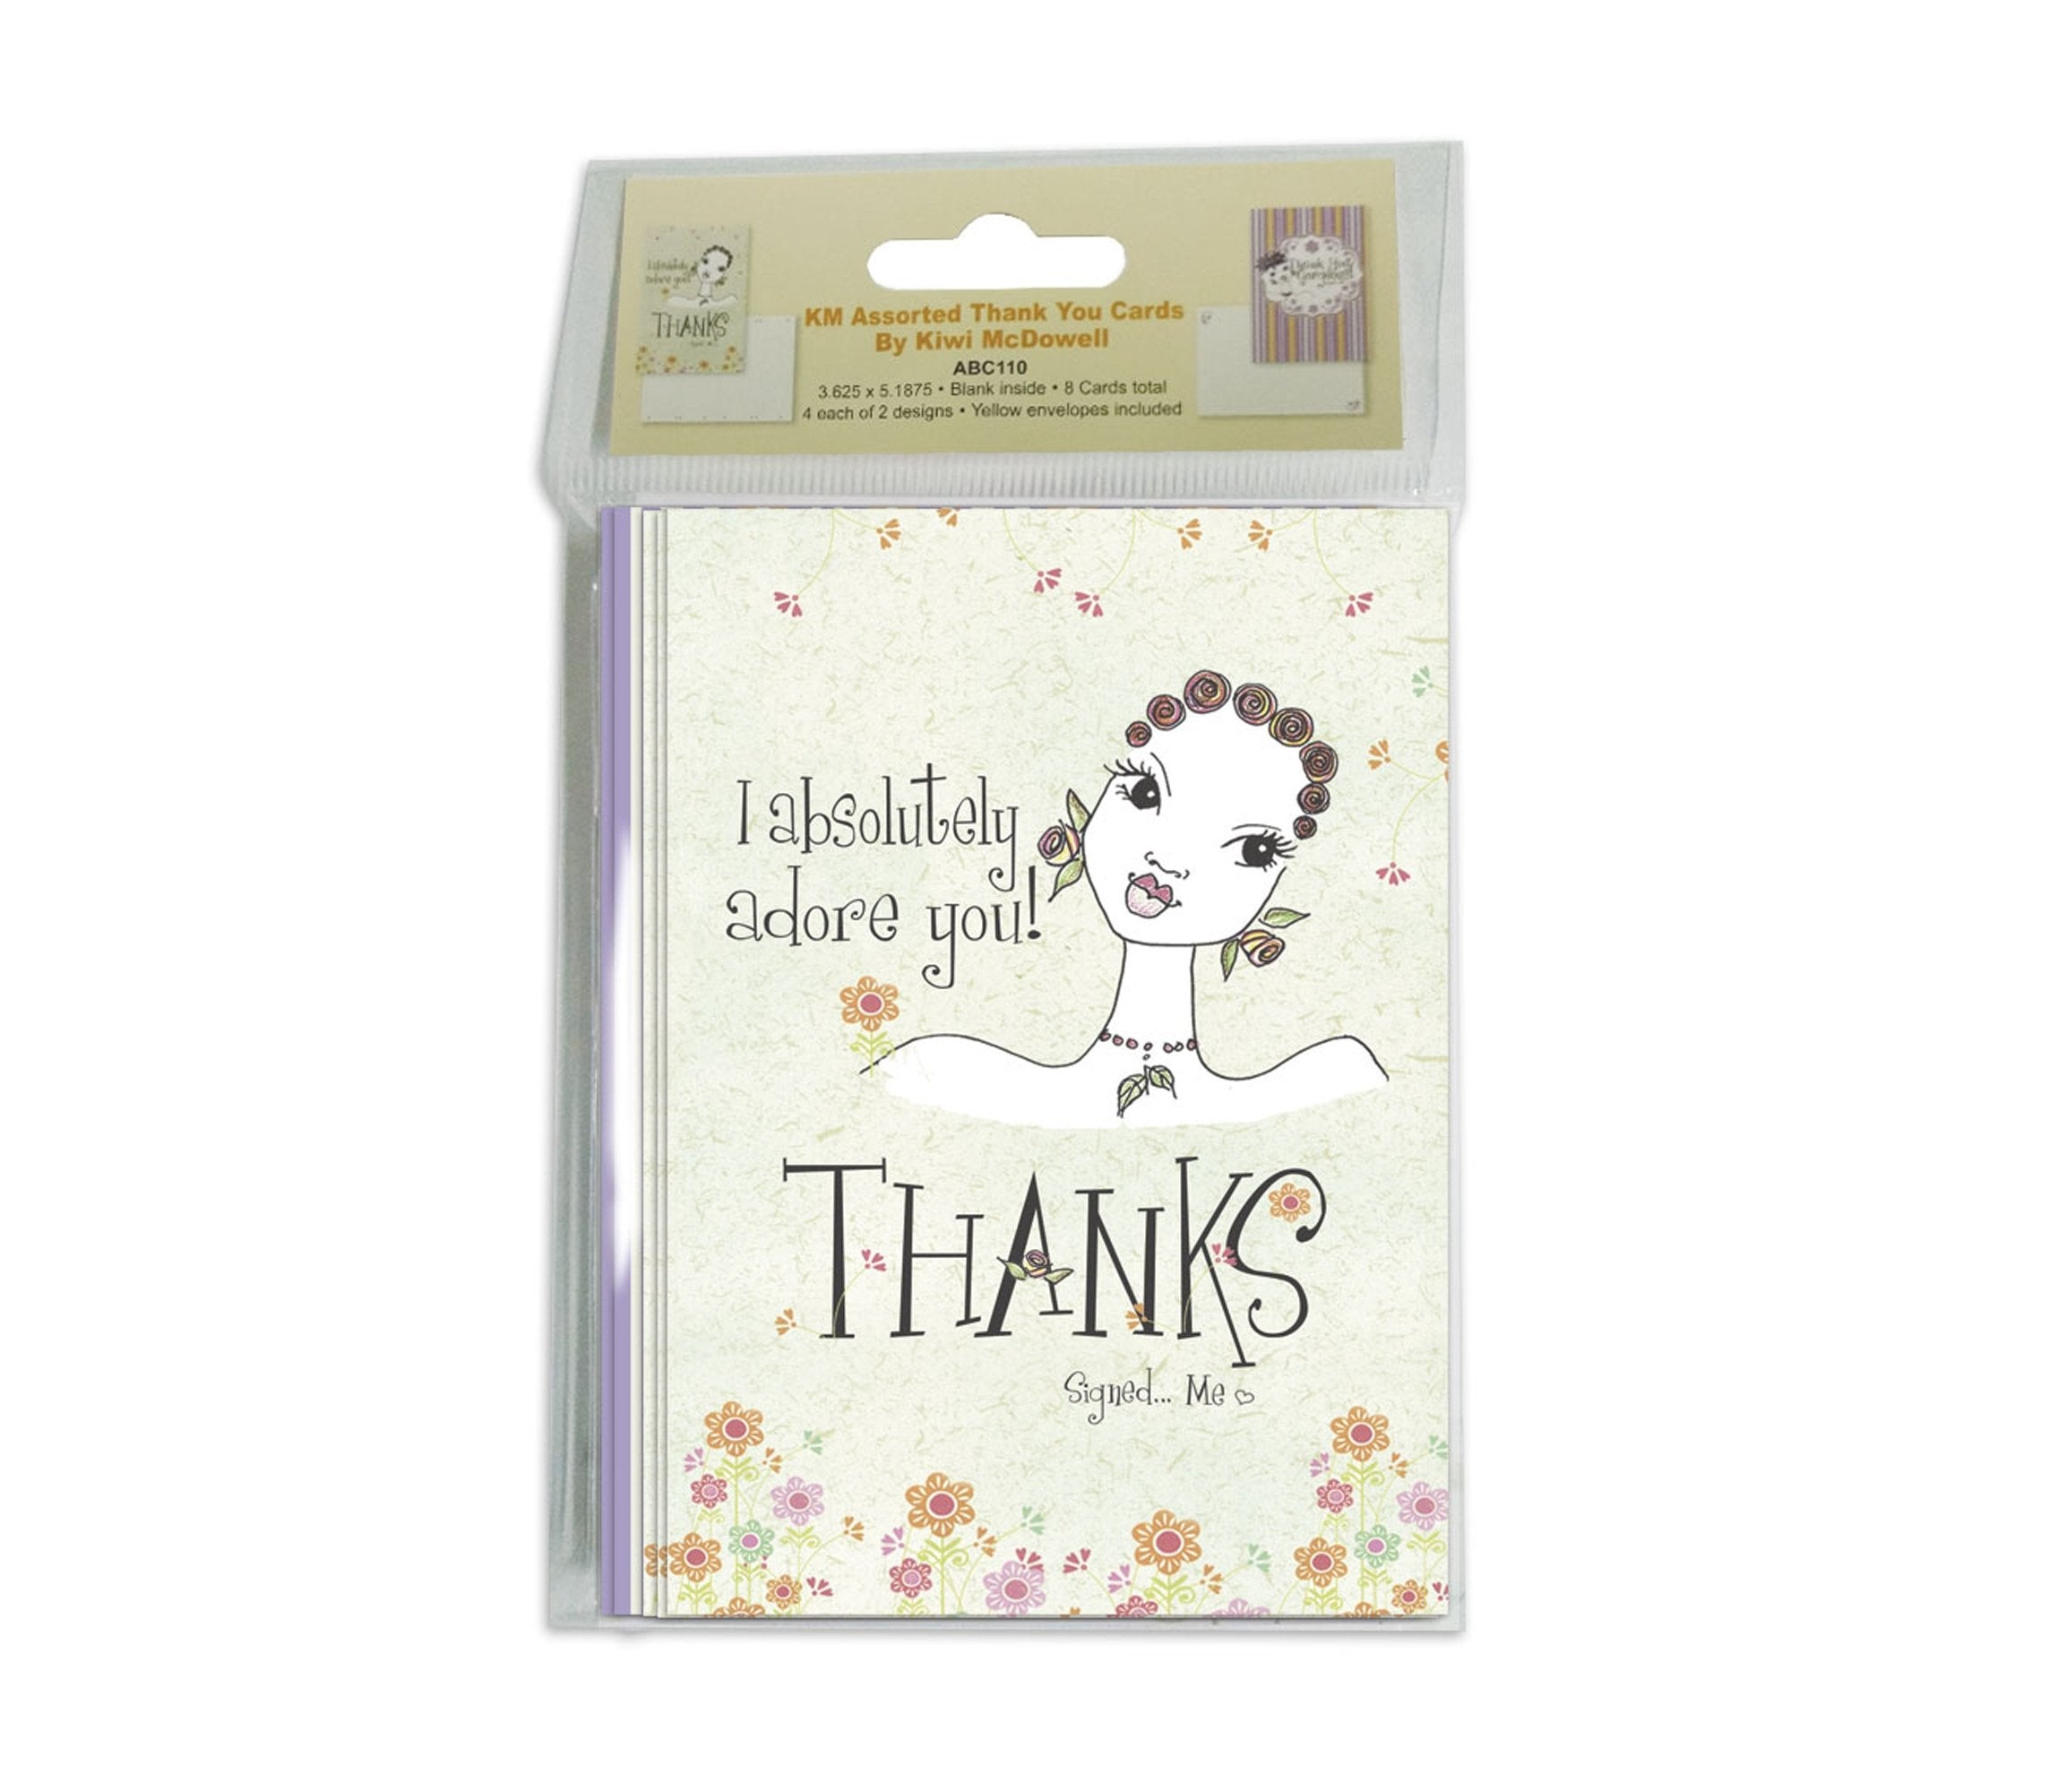 Kiwi McDowell Set: African American Thank You Cards by Shades of Color